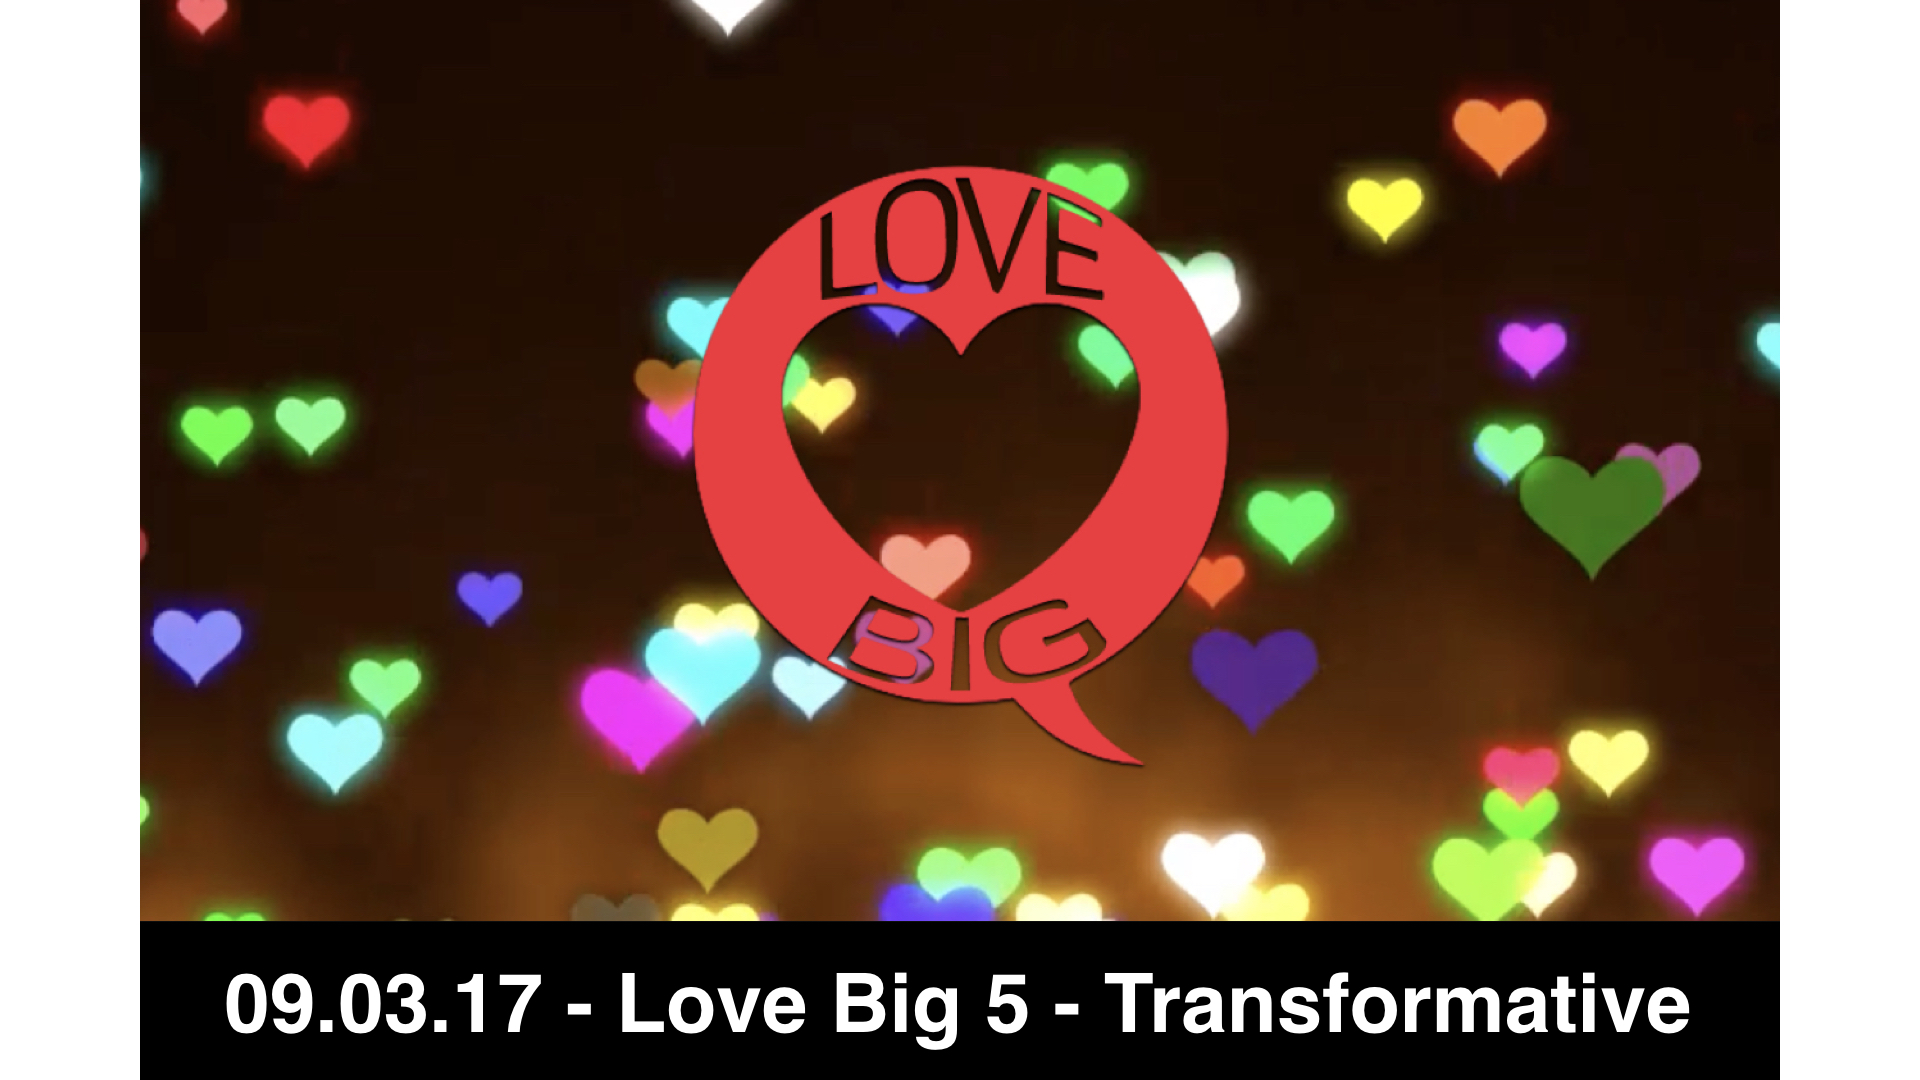 09.03.17 - Love Big 5 - Transformative